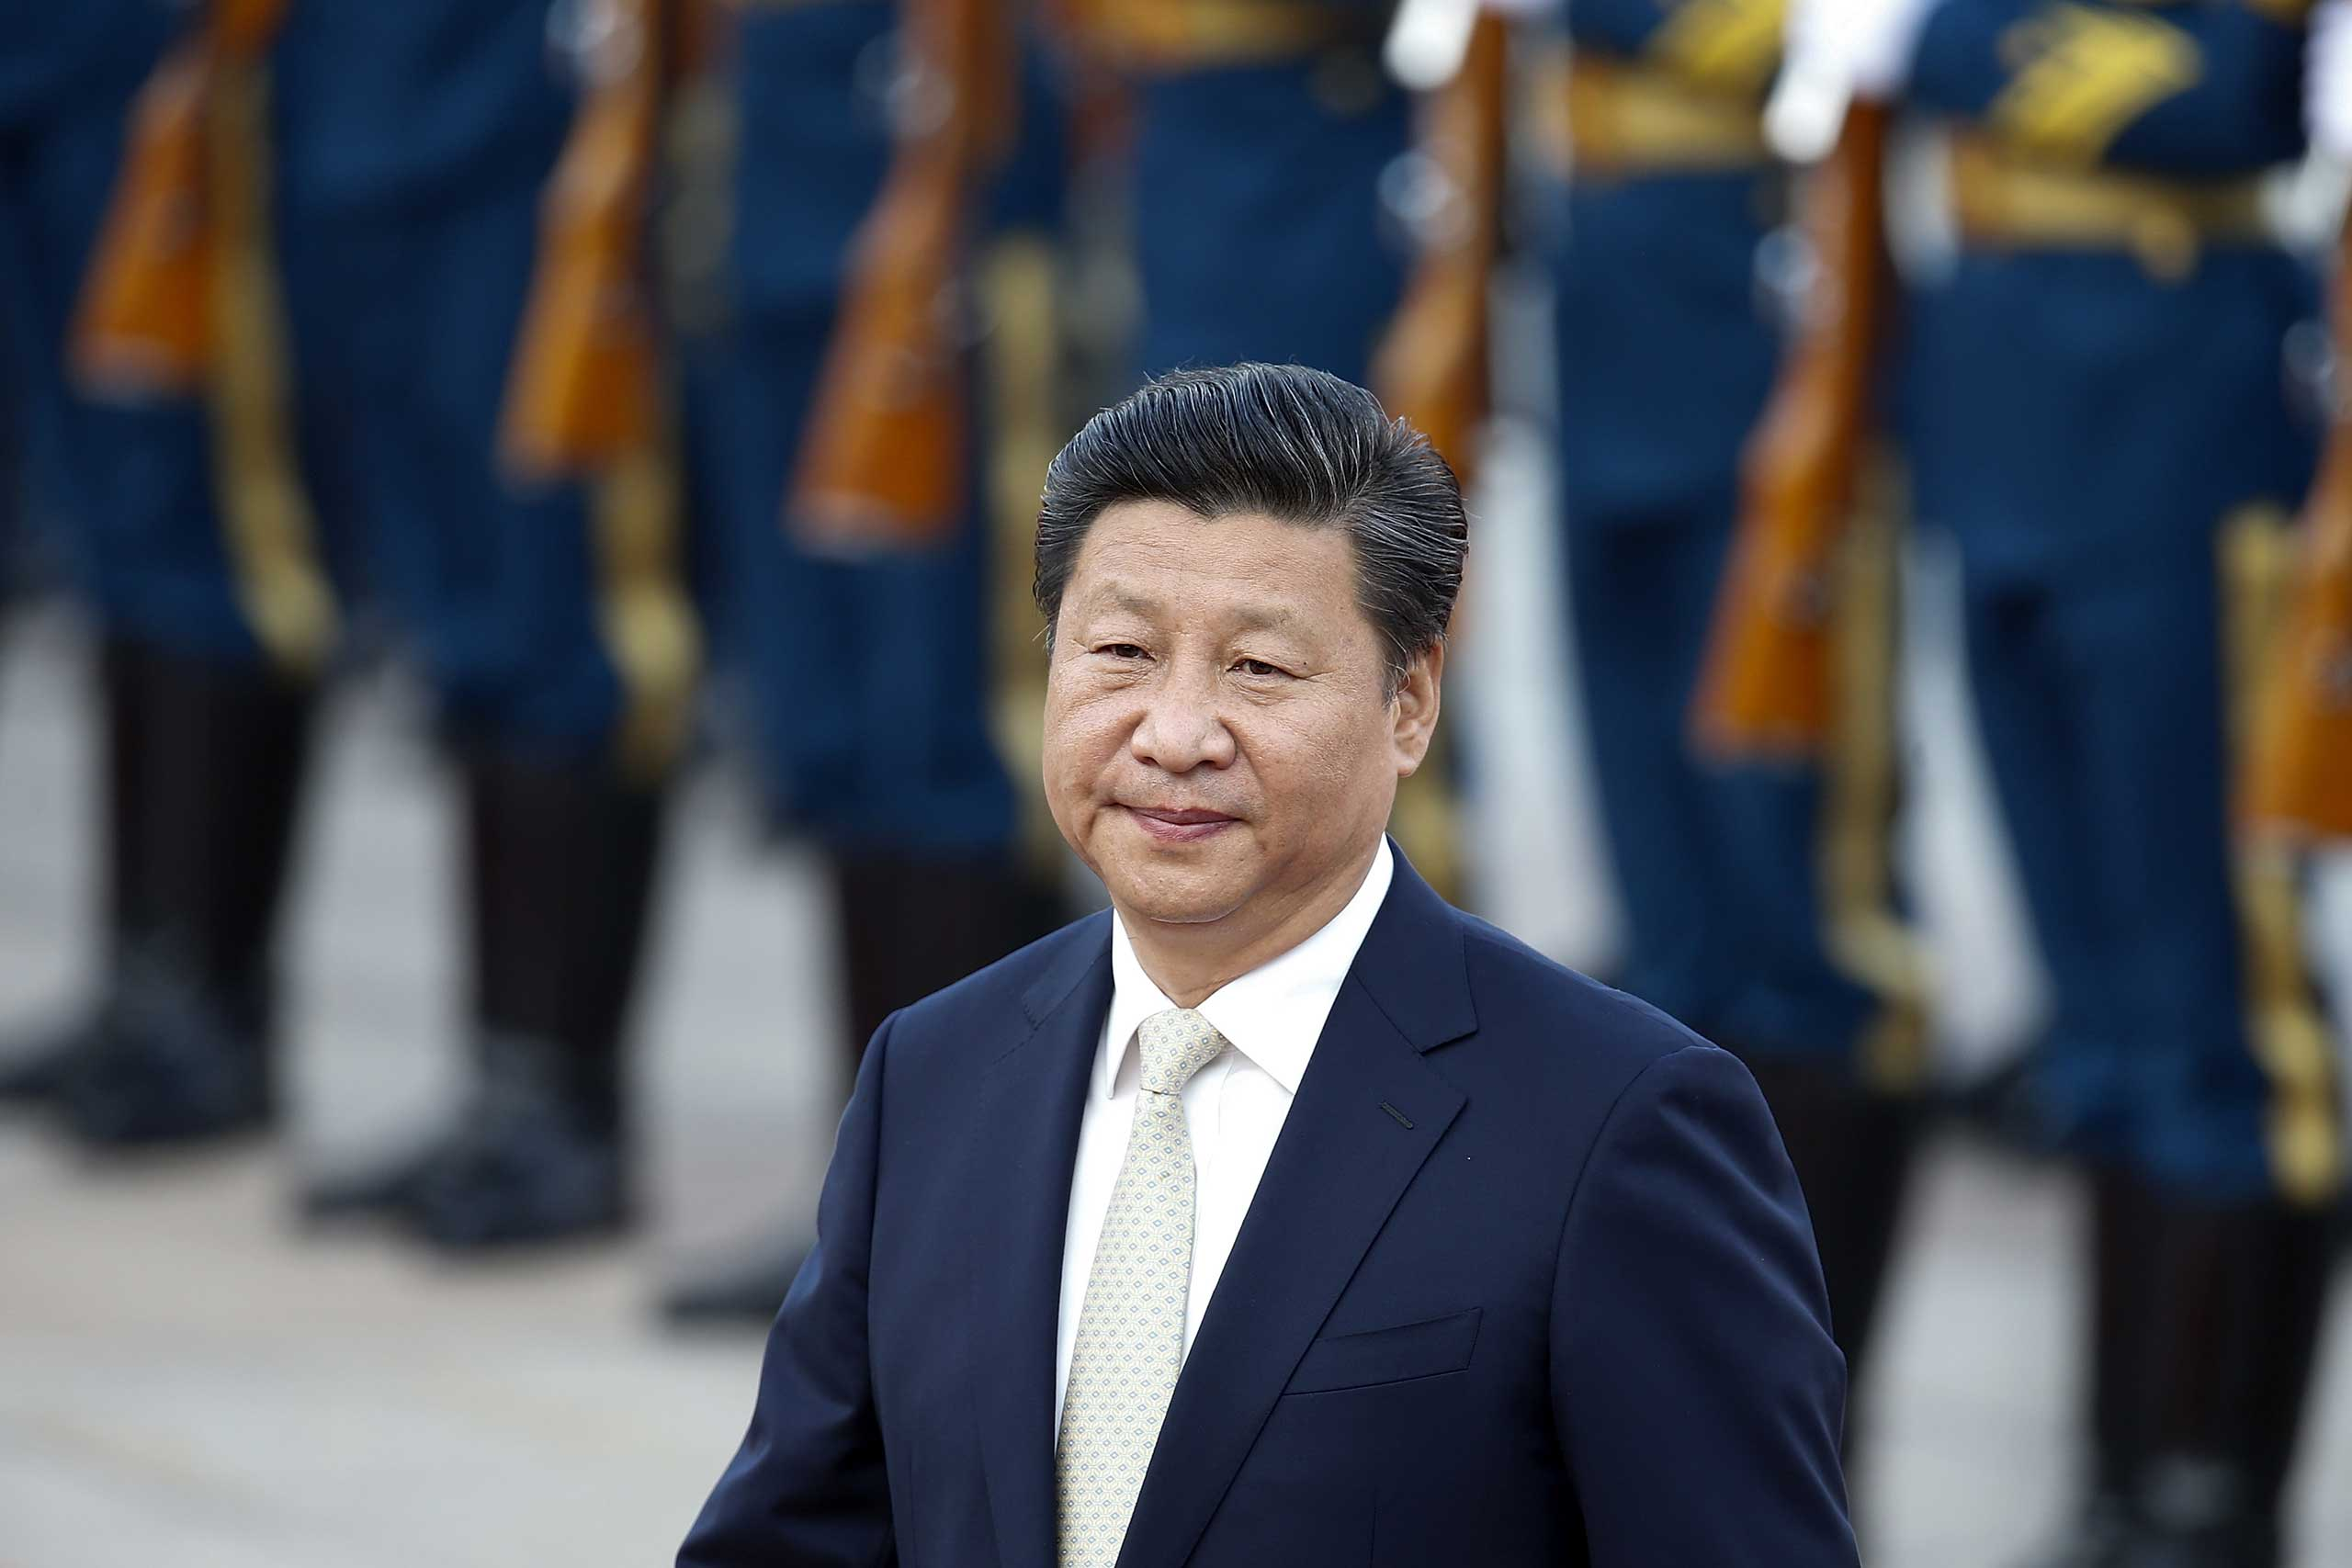 Chinese President Xi Jinping accompanies Mauritania's President Mohamed Ould Abdel Aziz (not pictured) to view an honour guard during a welcoming ceremony outside the Great Hall of the People in Beijing, on Sept. 14, 2015